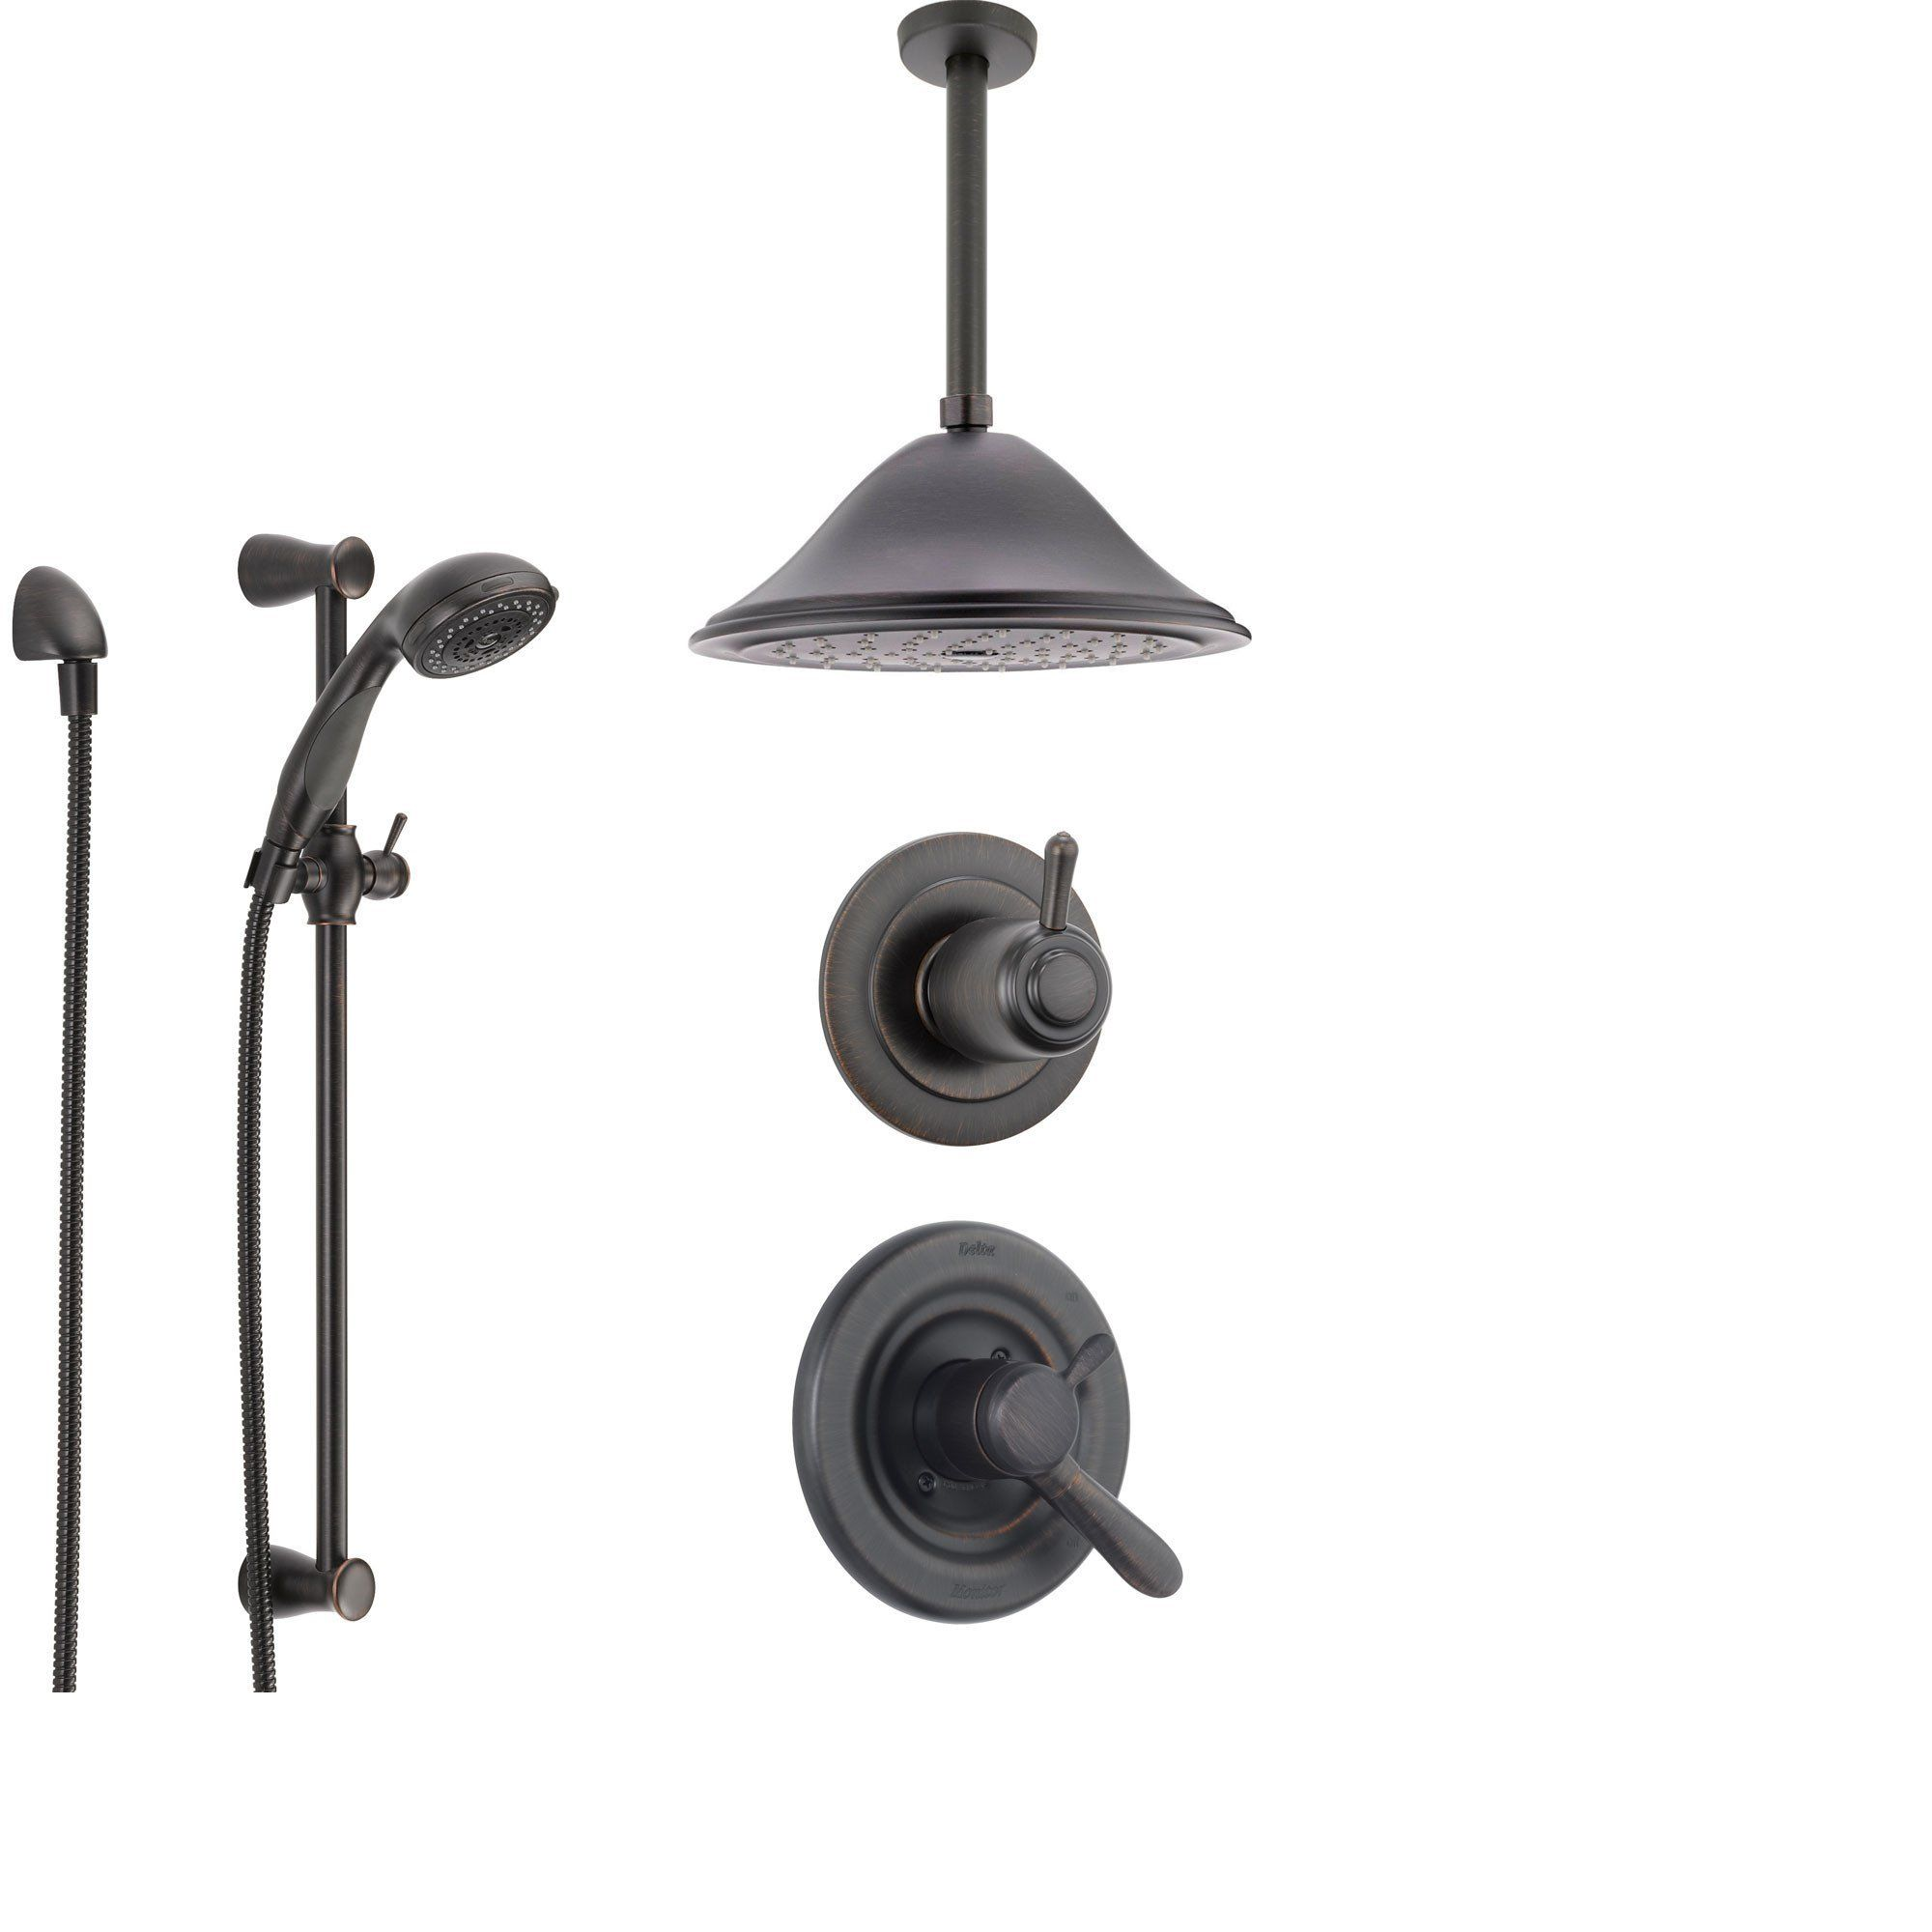 Delta Lahara Venetian Bronze Shower System With Dual Control